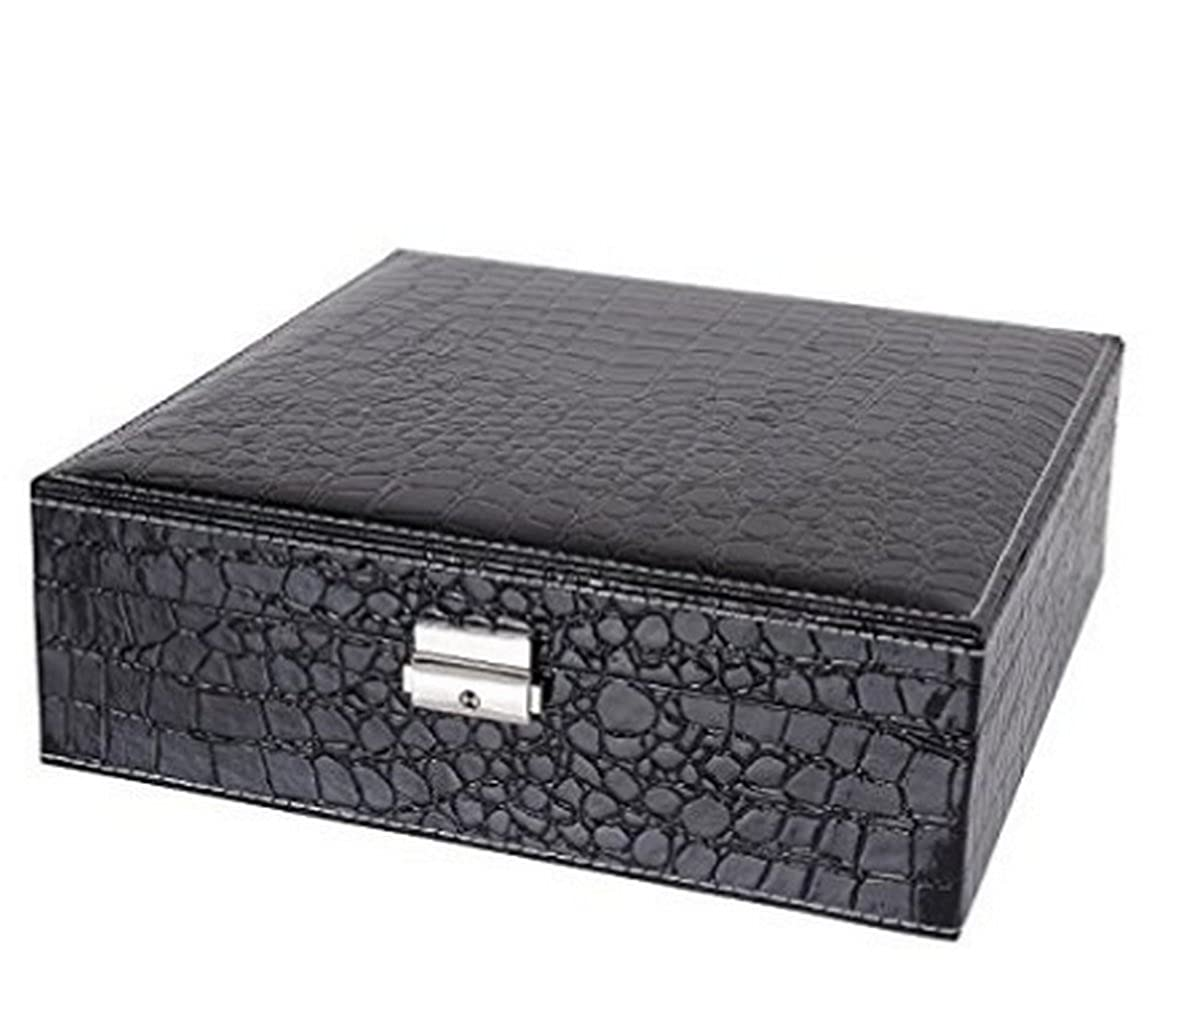 Leather Jewelry Box Makeup Case Large Capacity Cosmetic Lockable Storage Organizer Display with Mirror Rose (Black)